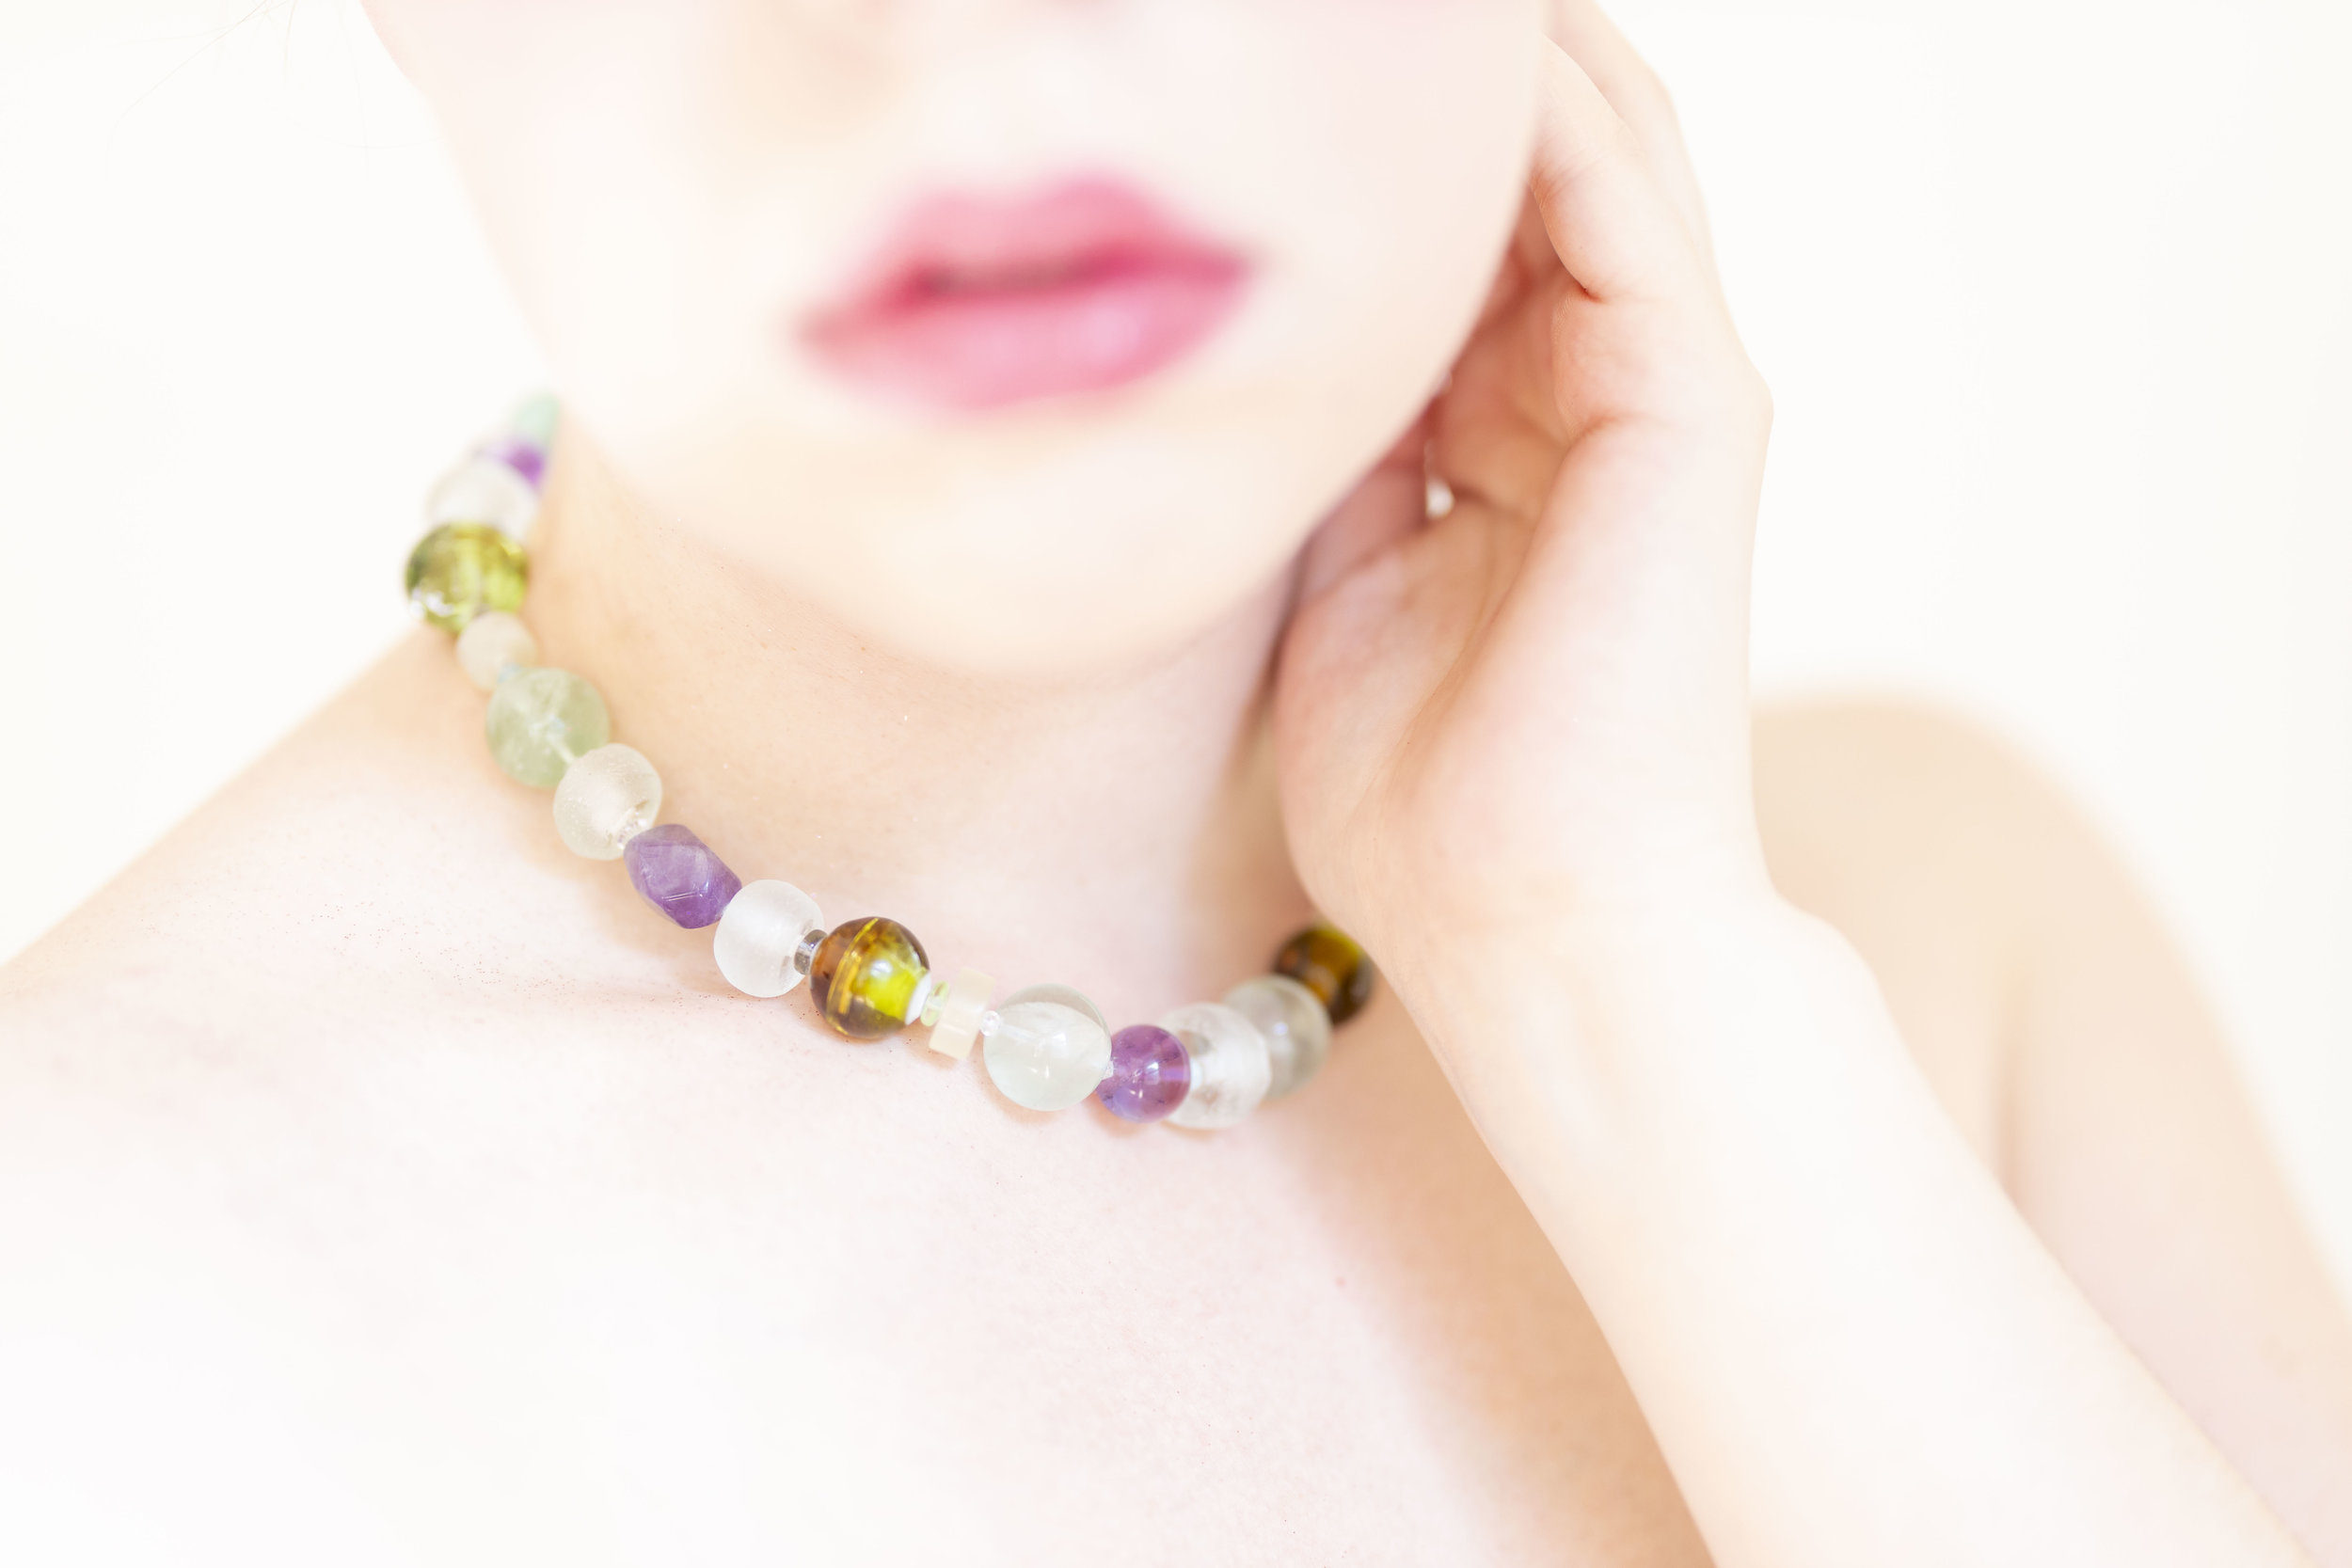 Sofia Angelina Photography Self-Portrait for Jeana Edelman Jewelry Portland Oregon Femme.jpg